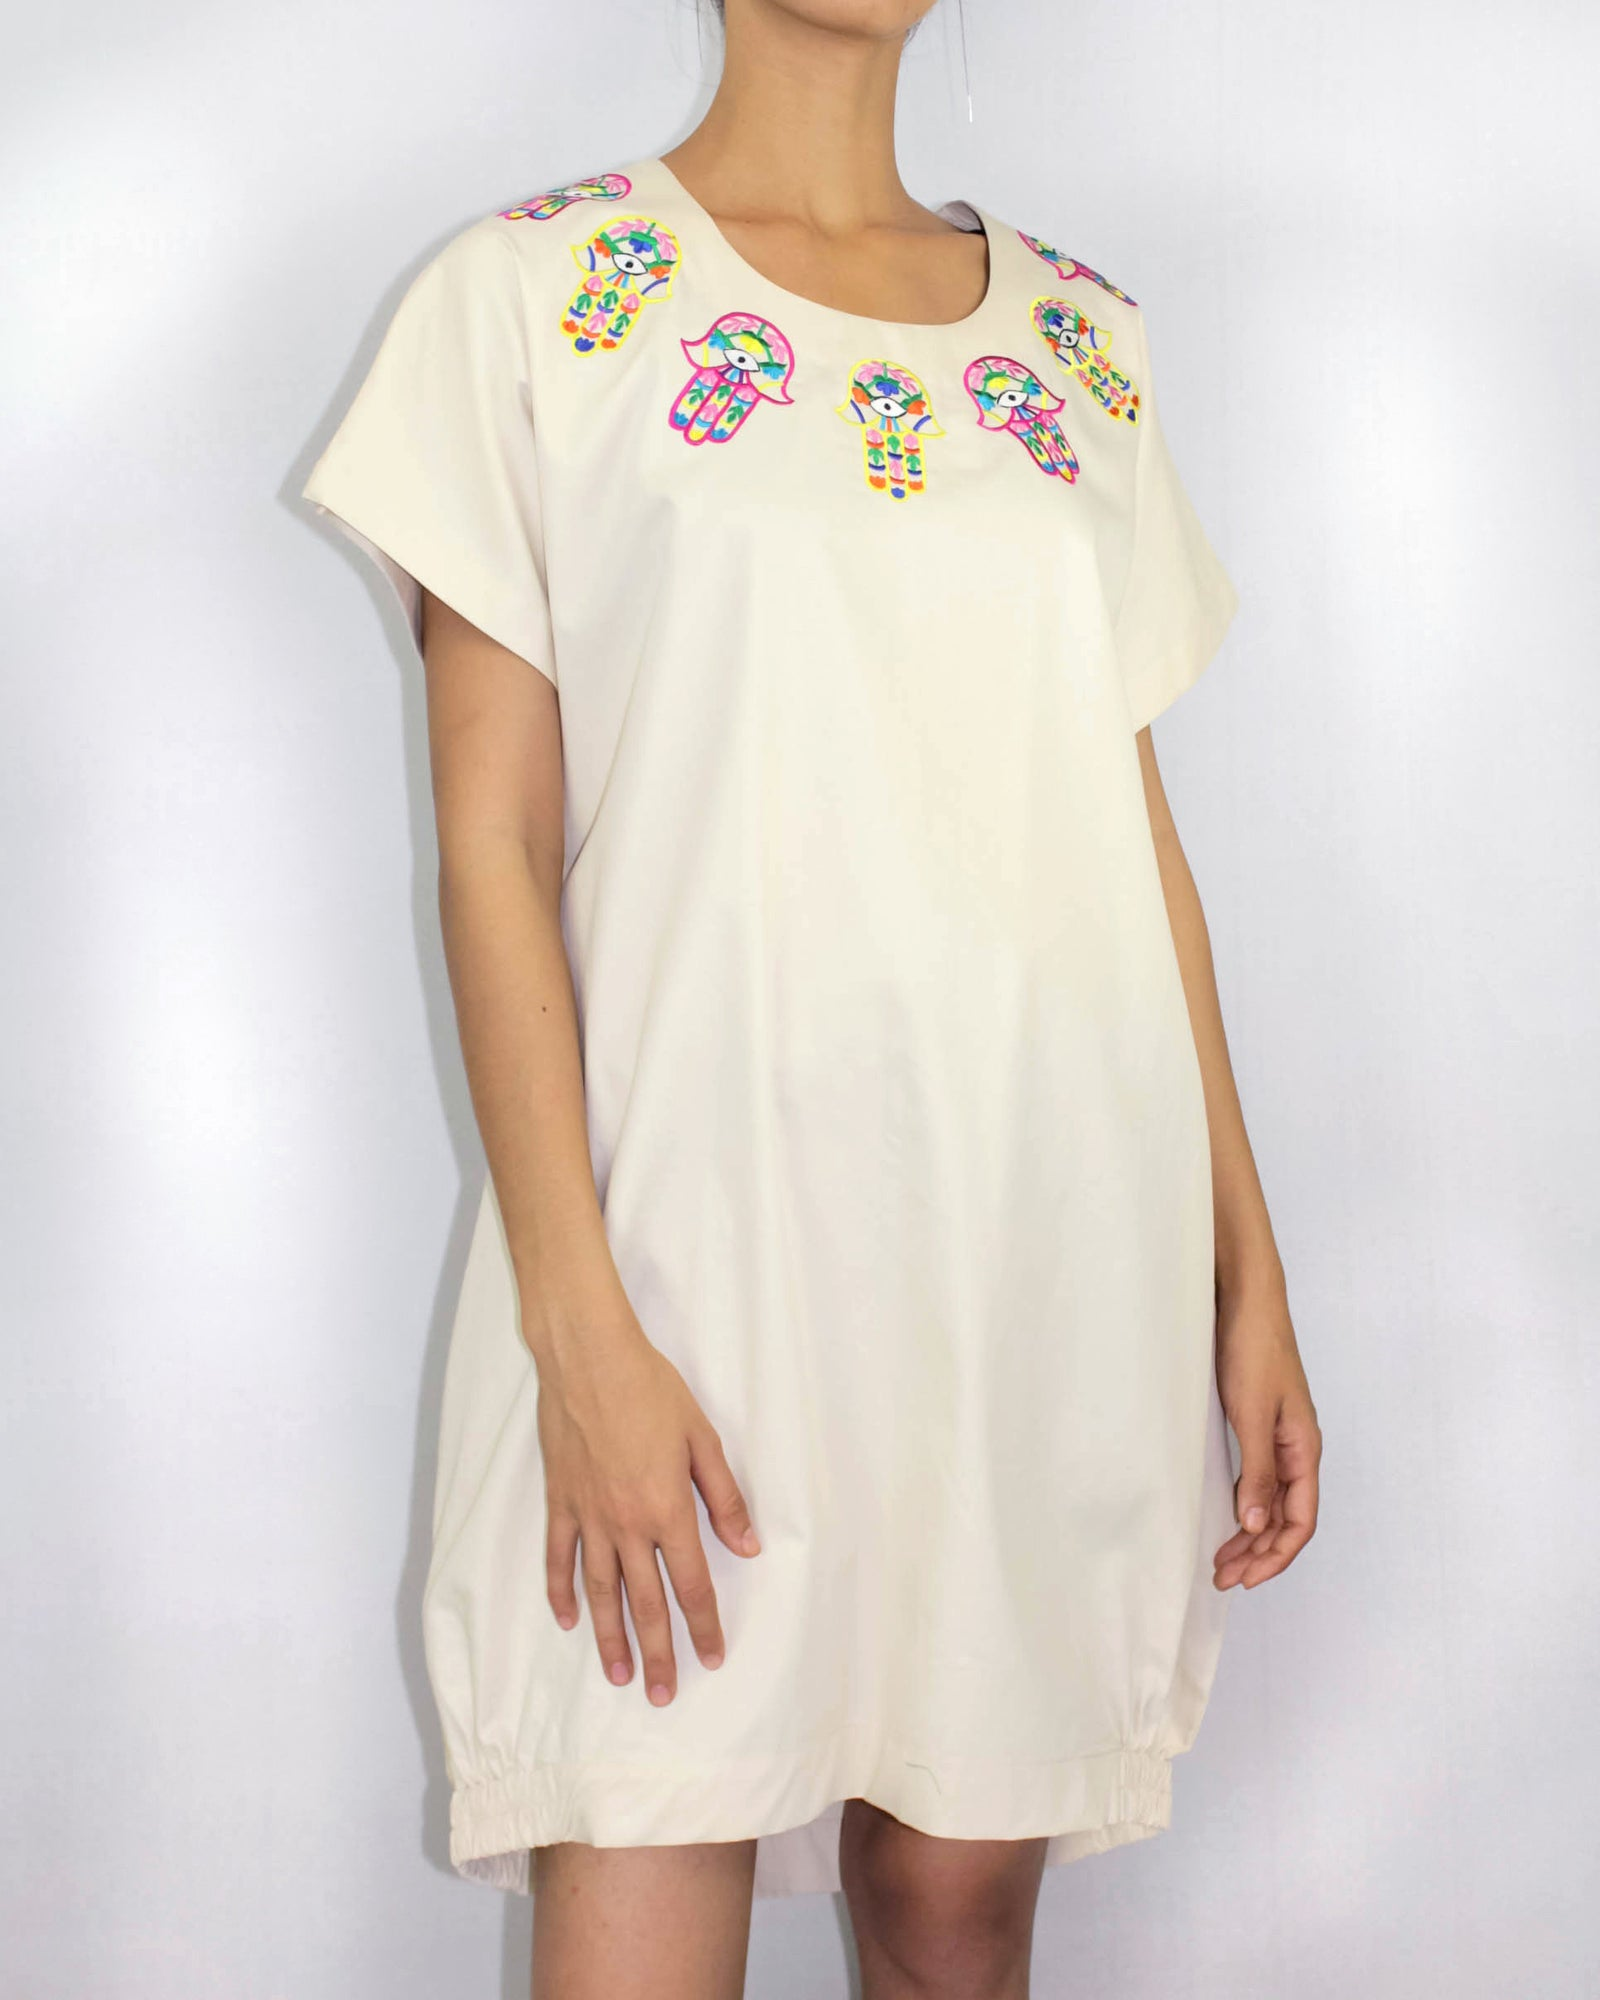 Fatma Hand Cotton Dress